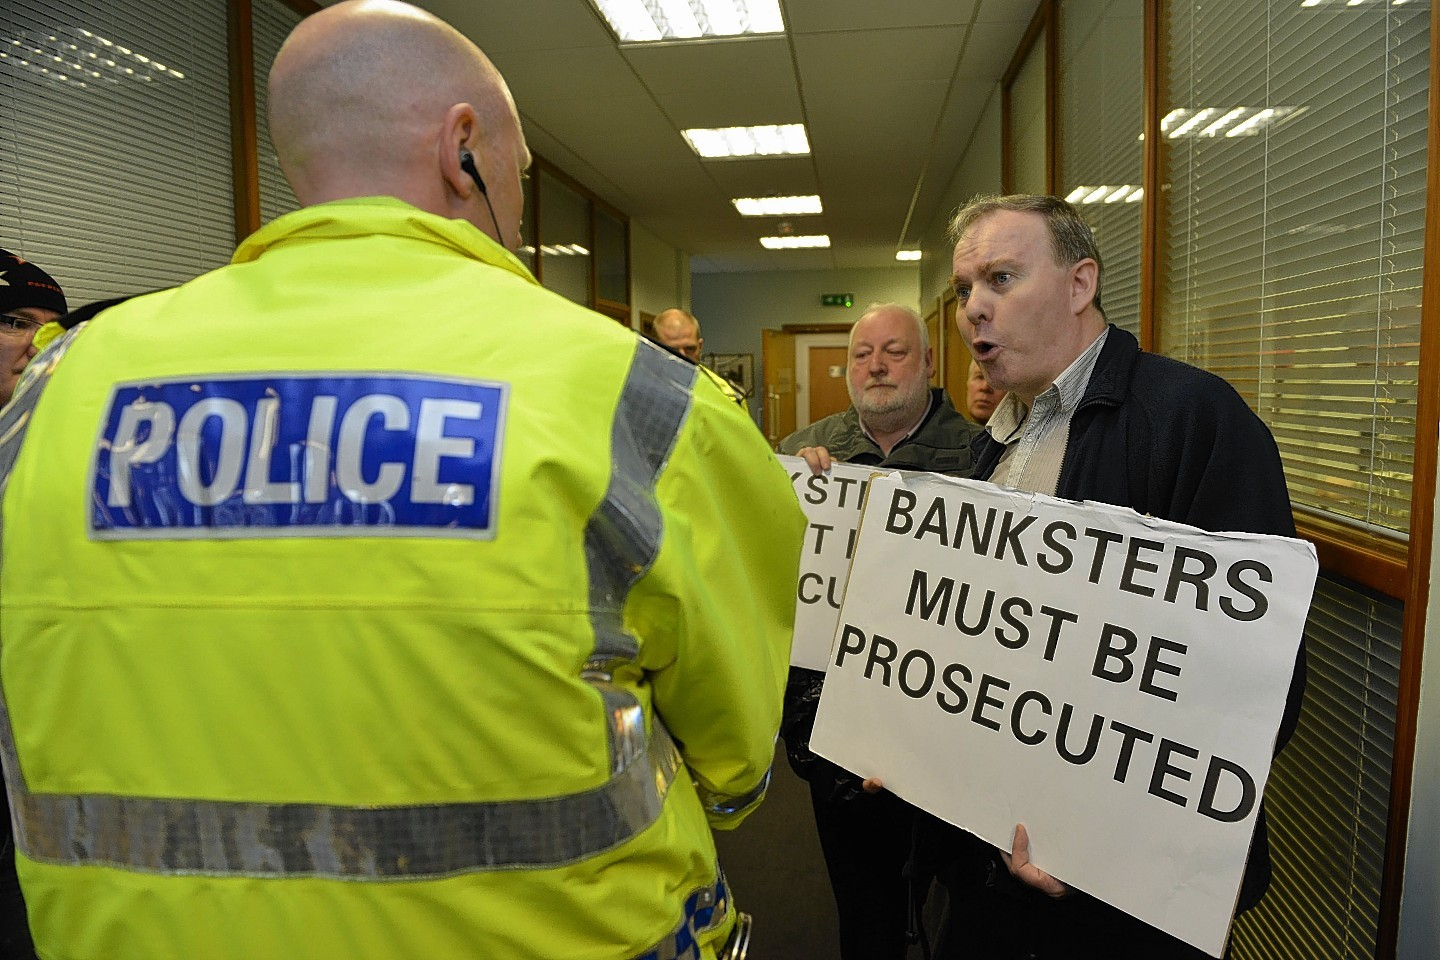 Banks have faced growing protests over their actions